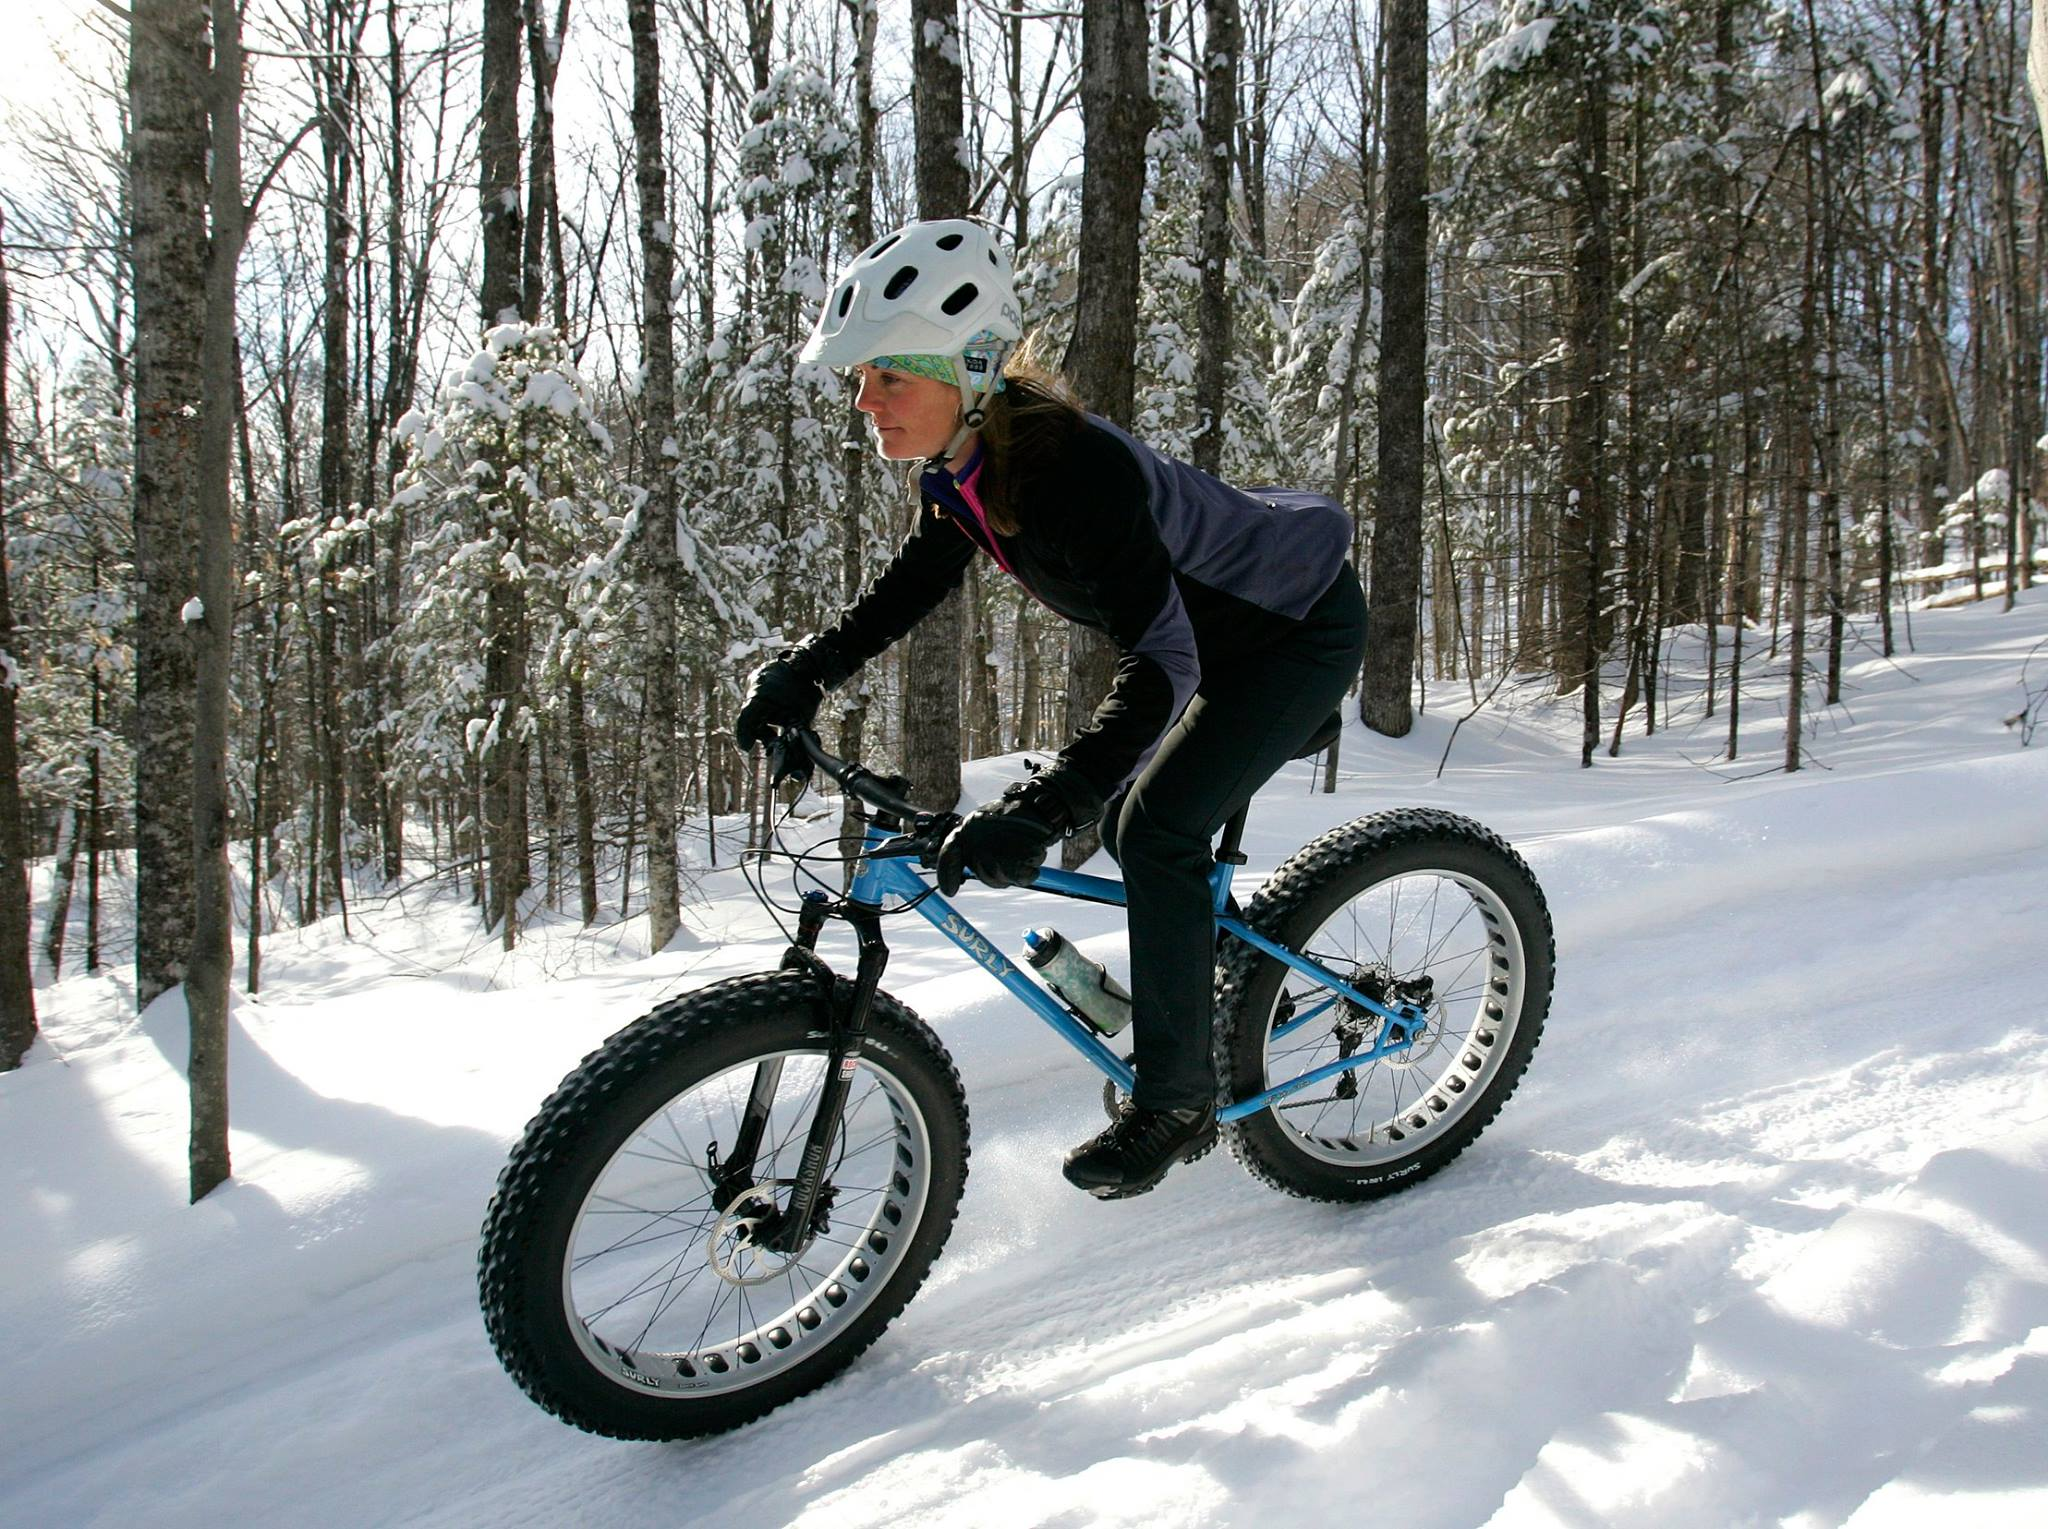 10 Of The Best Fat Biking Trails In The Us In 2015 Page 2 Of 2